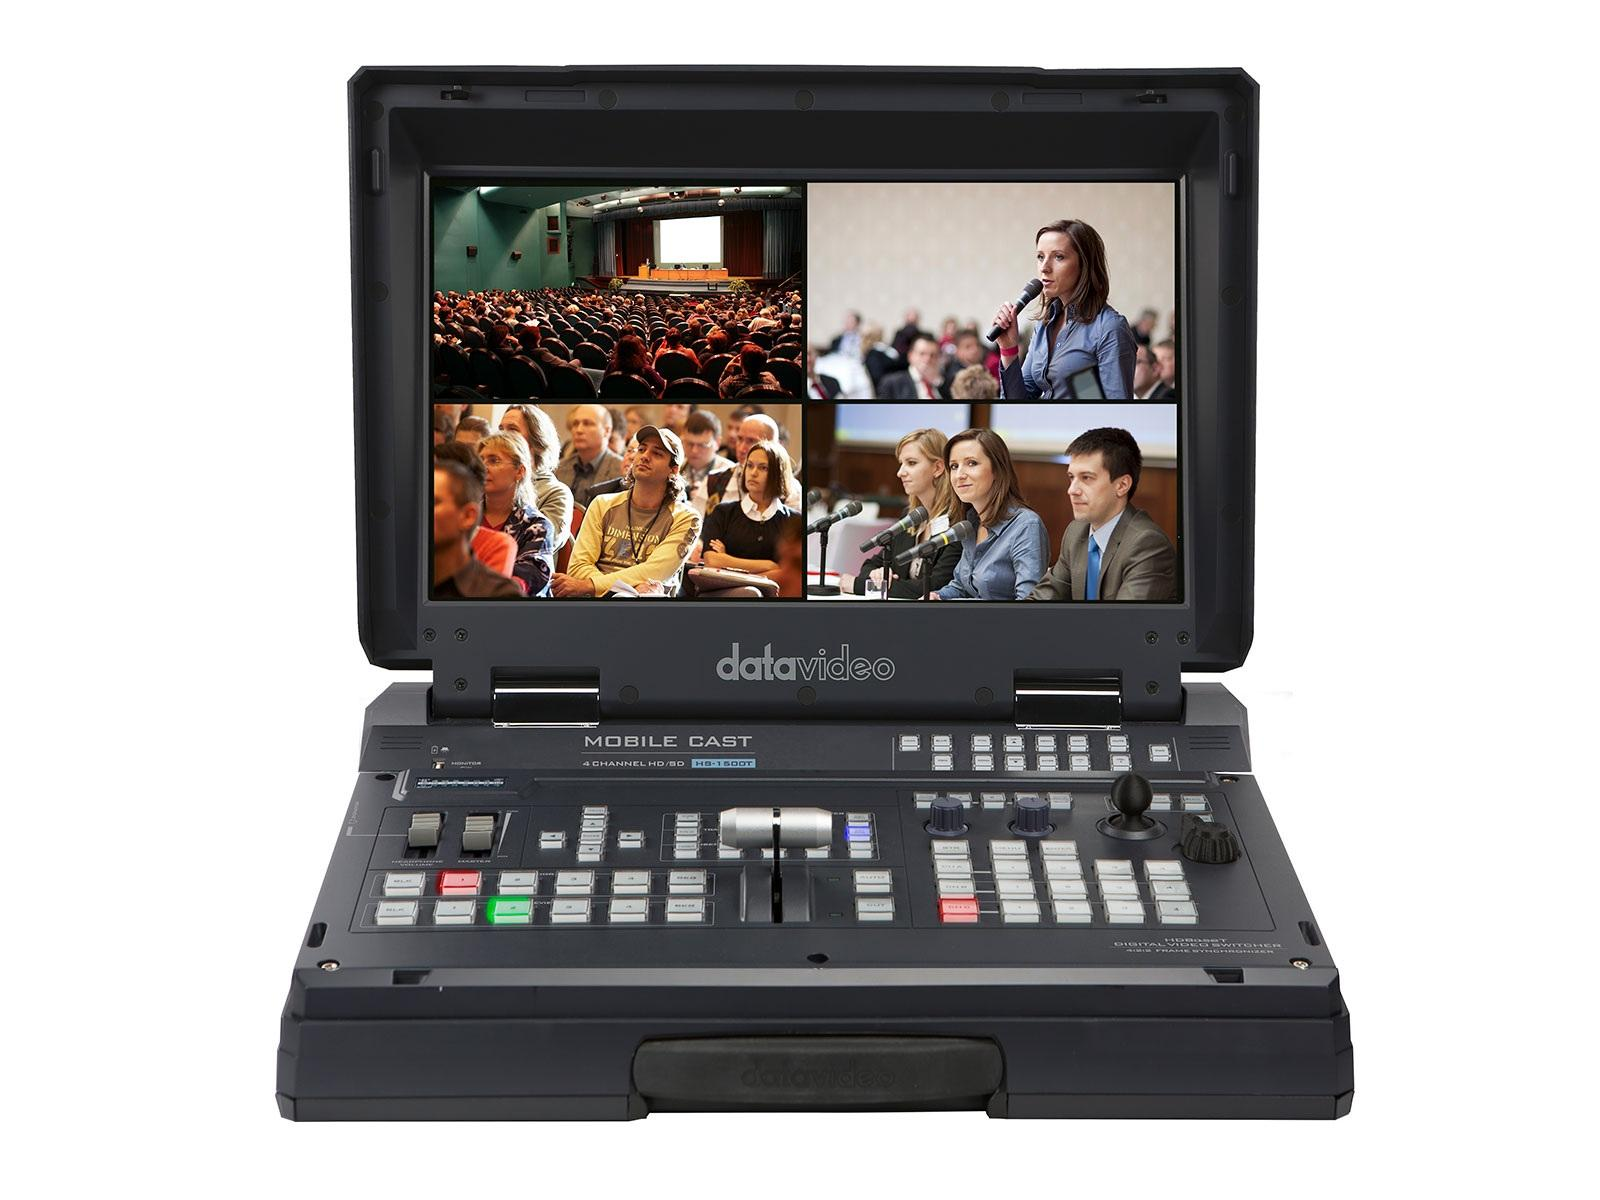 Datavideo HS-1500T 4-Channel HDBaseT/HDMI Portable Production Switcher